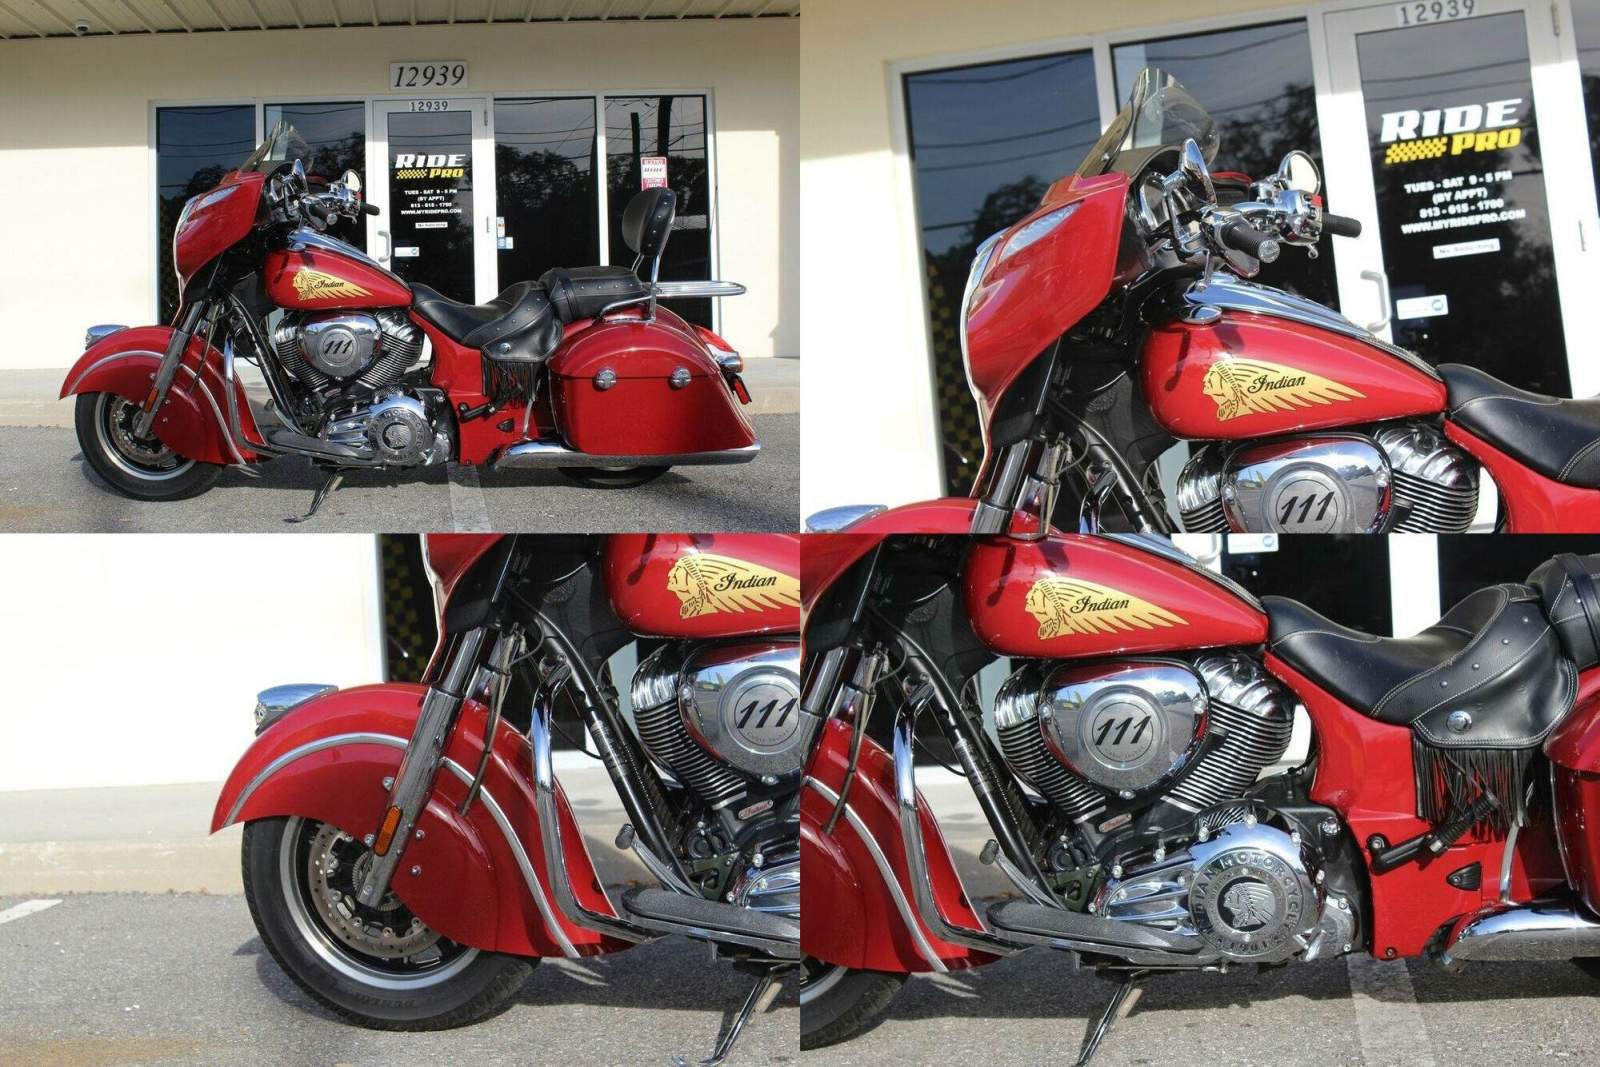 2015 Indian Chieftain Red used for sale